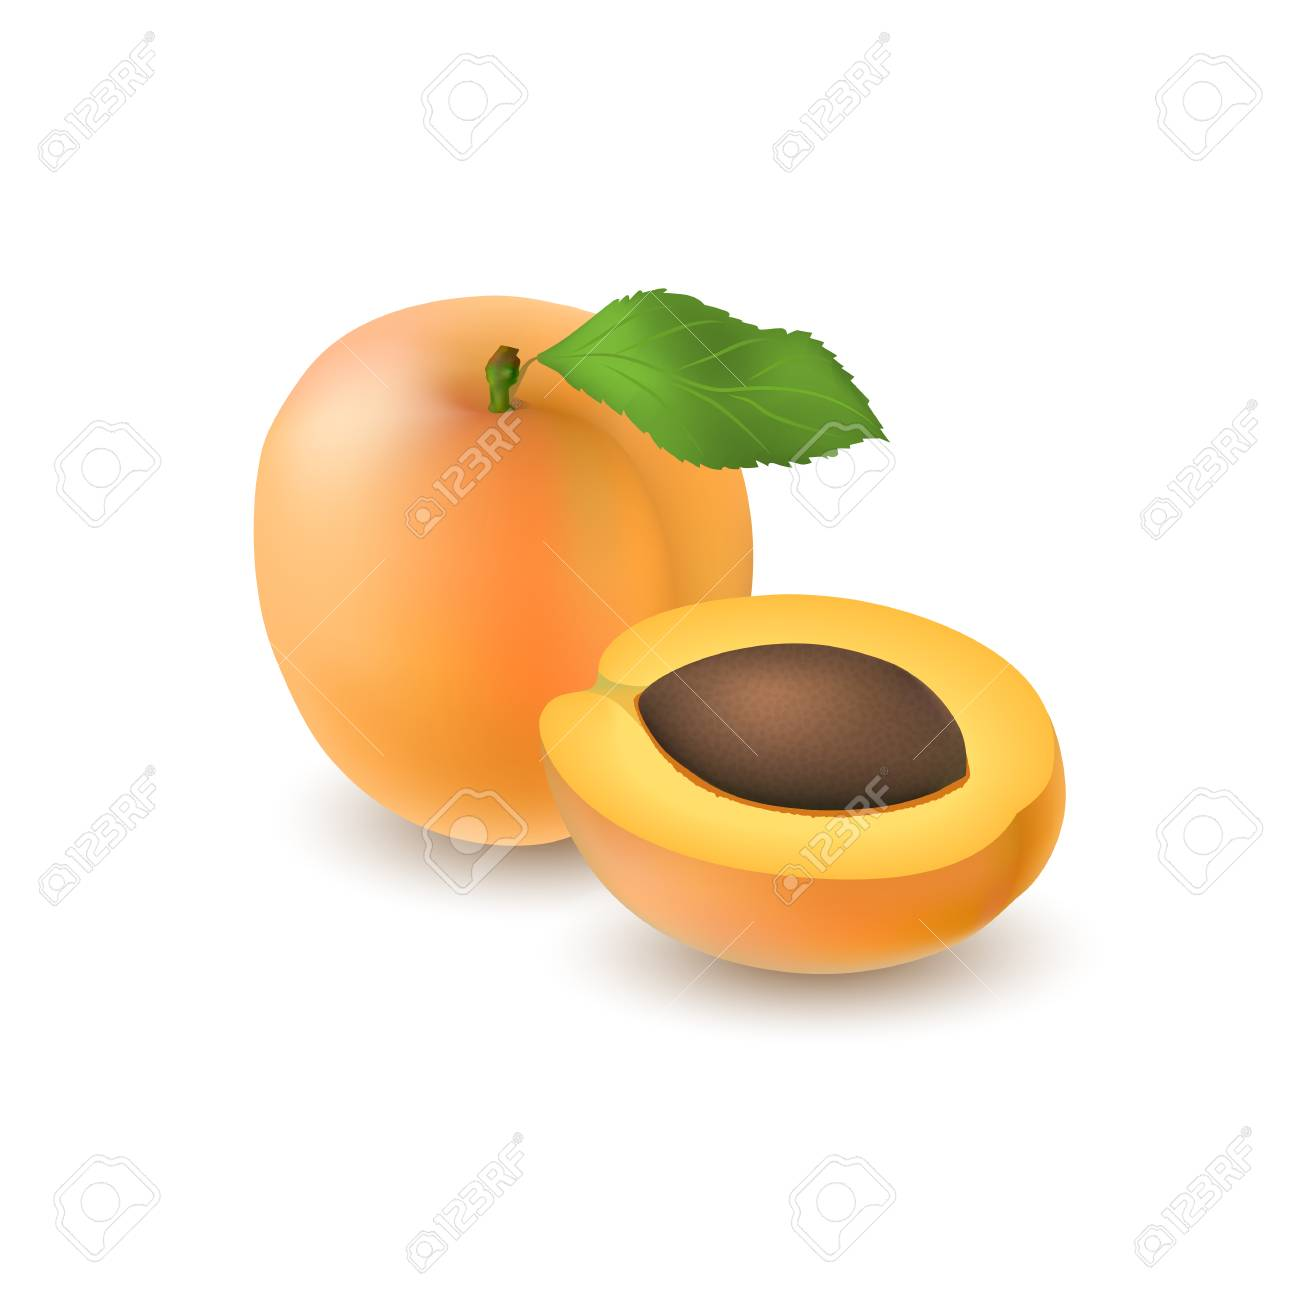 isolated realistic colored whole juicy apricot with stick and